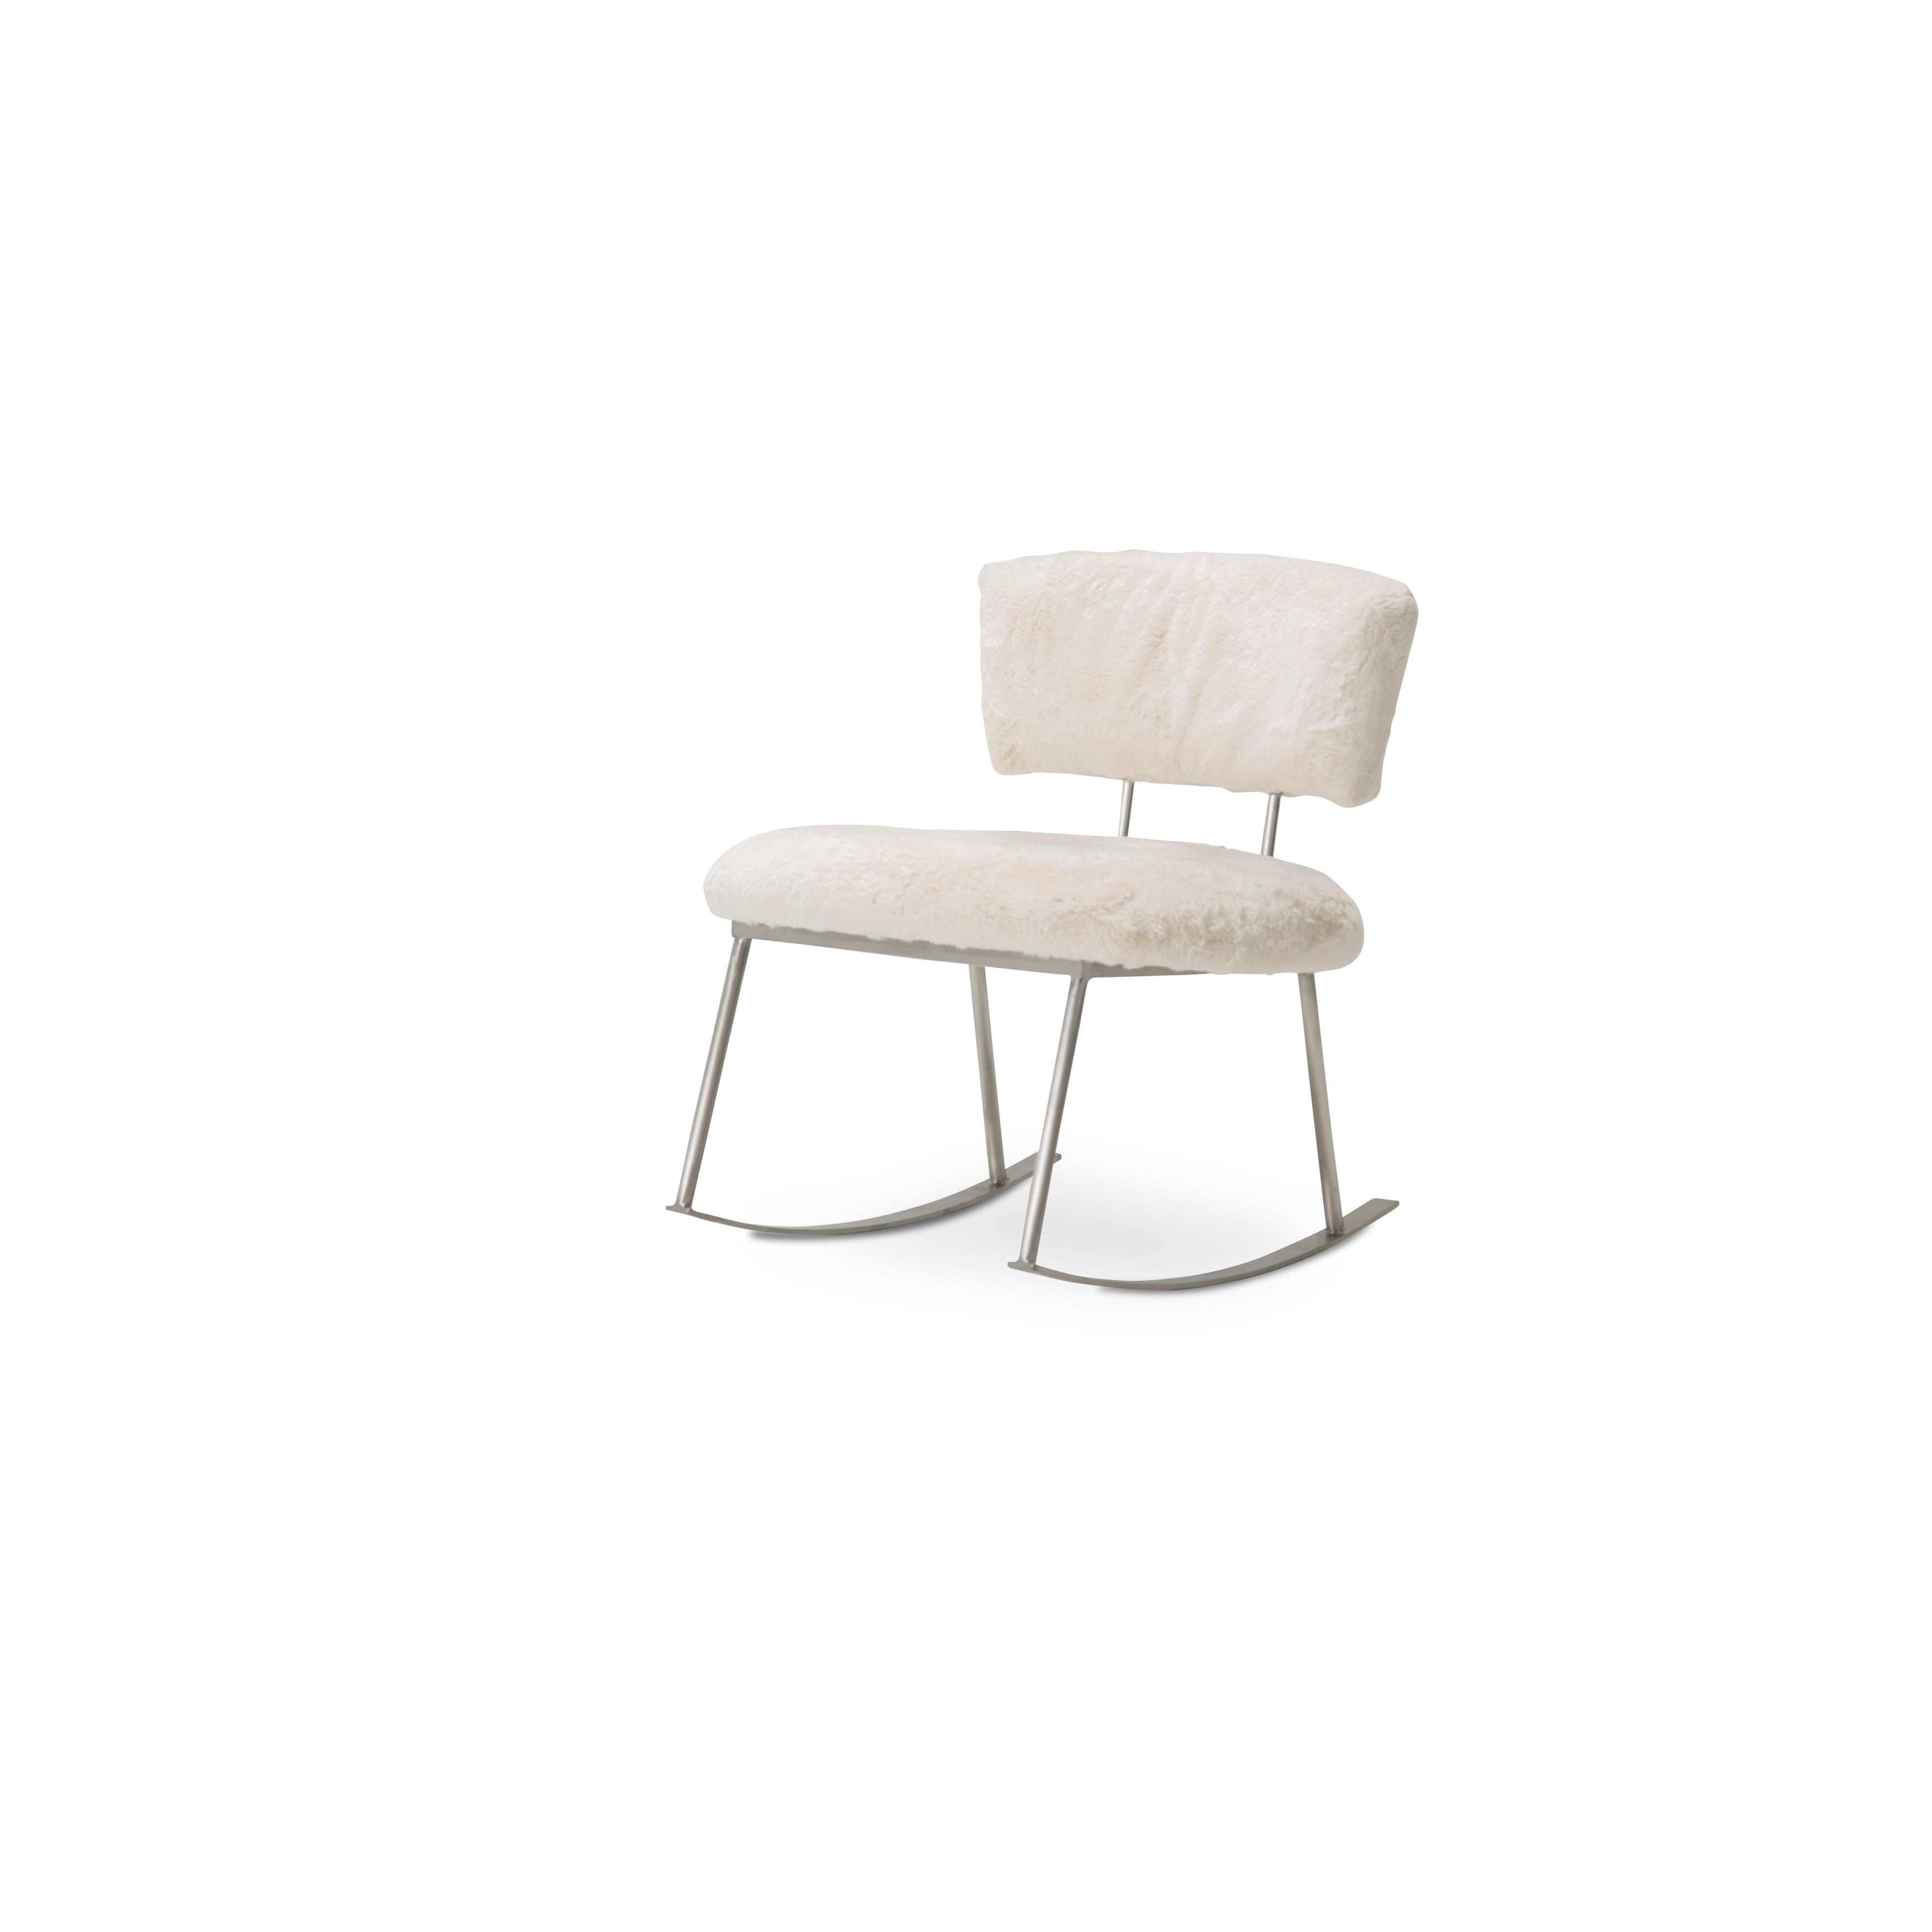 Pebble Beach Powder and Brushed Silver Rocker Chair by Kathy Ireland